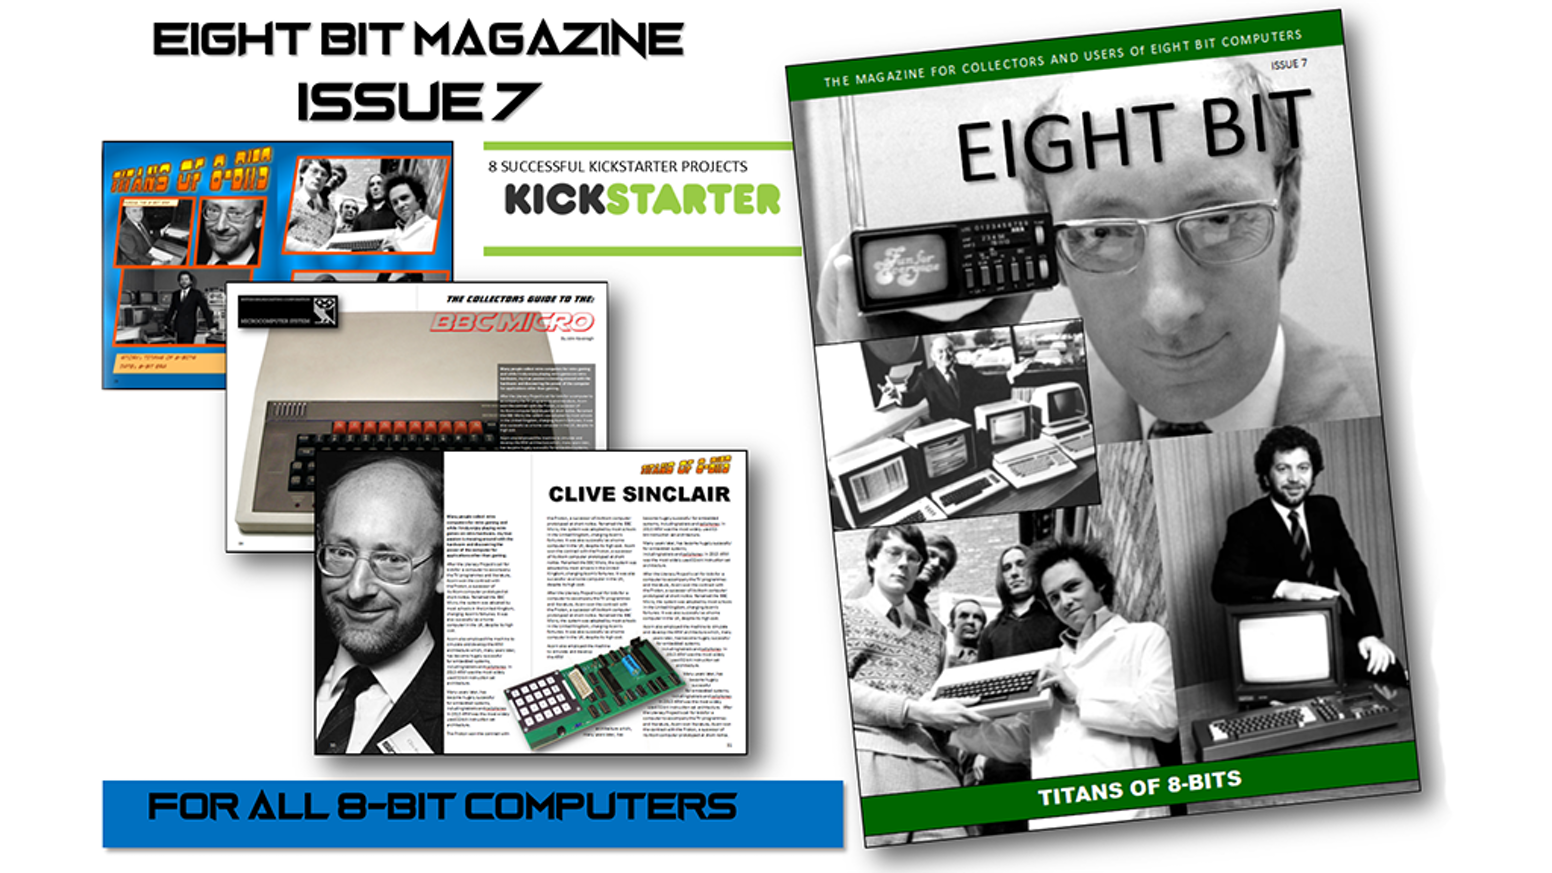 A 64 pages A5 printed publication covering 8-Bit computers such as the Commodore 64, ZX Spectrum, Amstrad CPC, MSX, Apple and Atari.